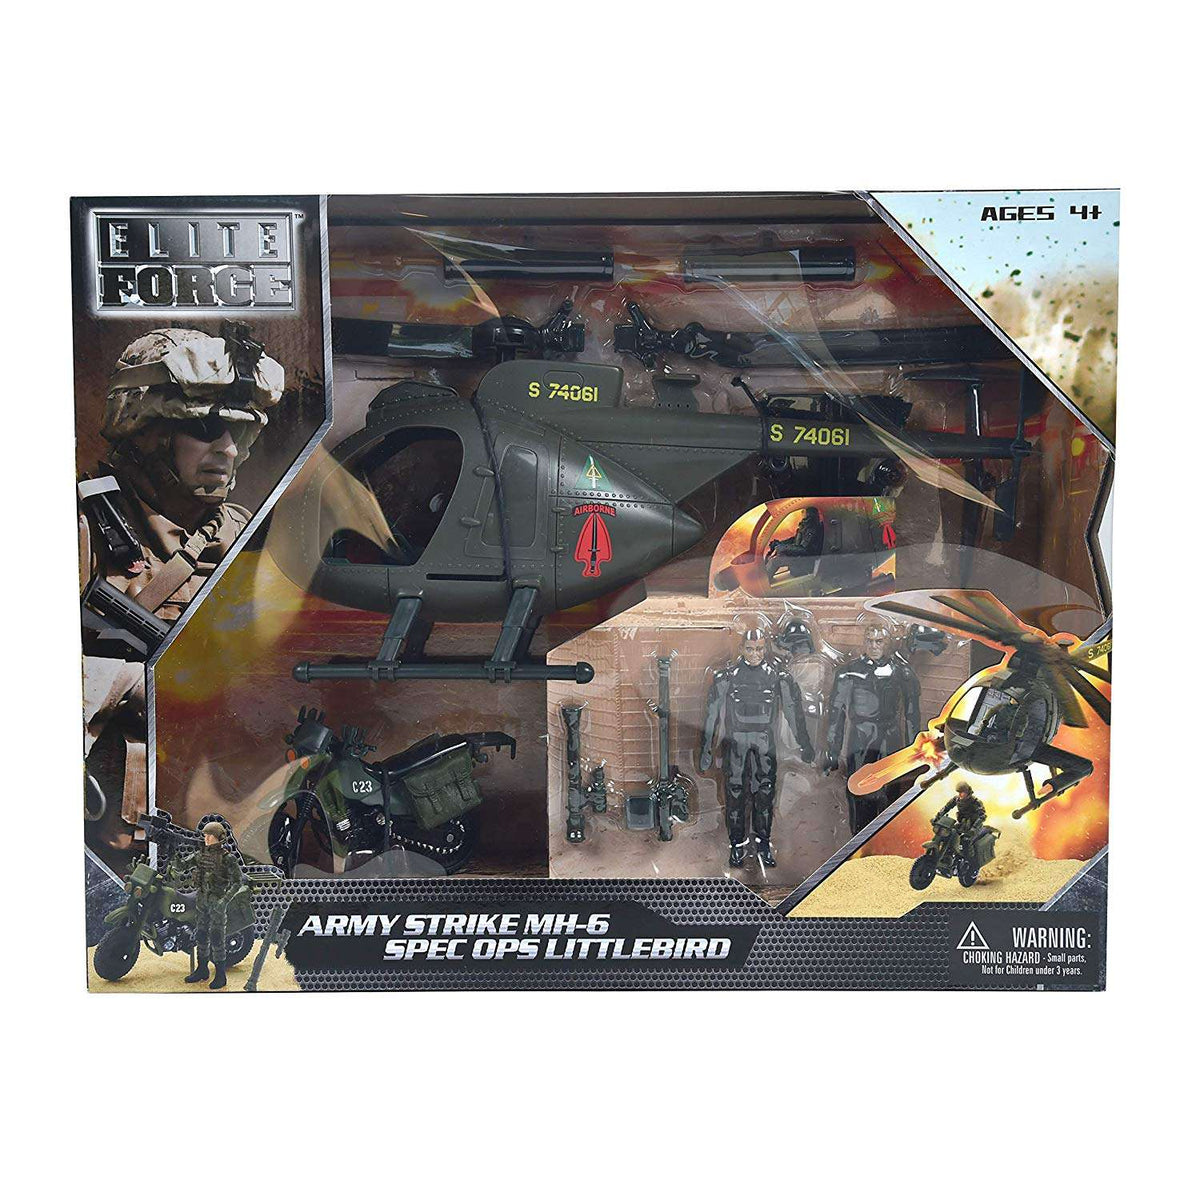 Sunny Days Elite Force - MH-6 Special Ops Little Bird Helicopter - Legacy Toys